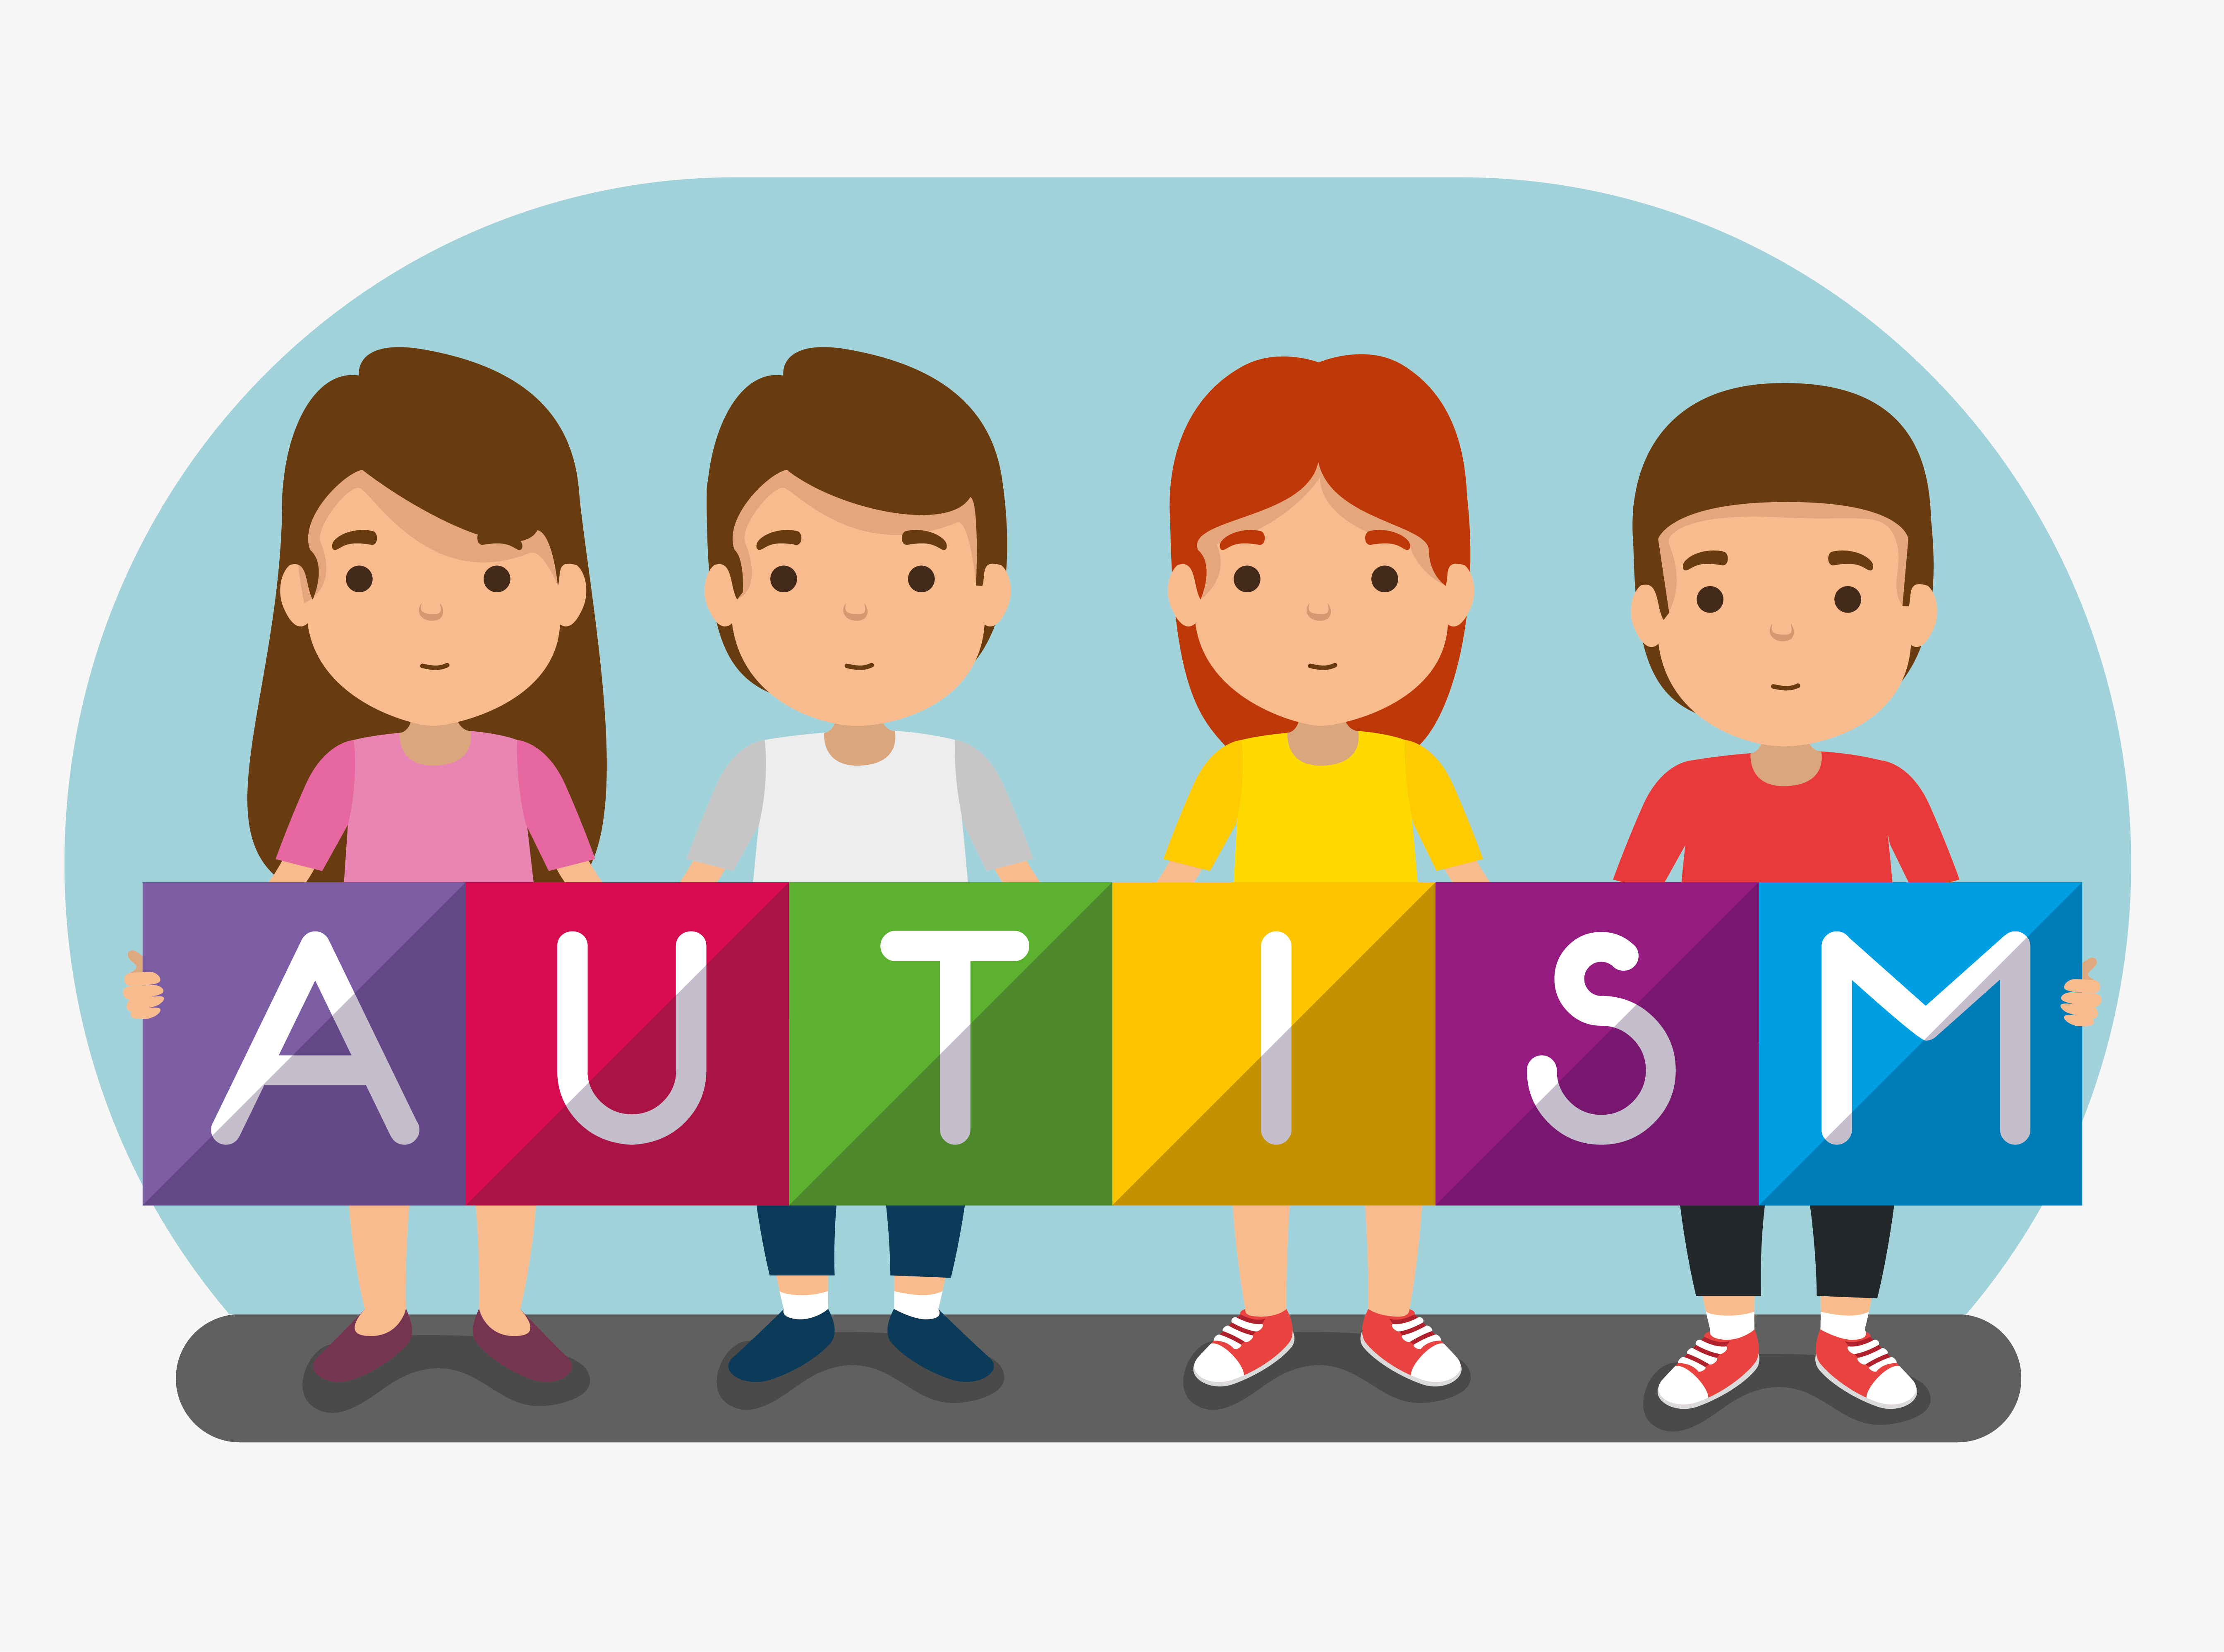 children-together-autism-day-campaign